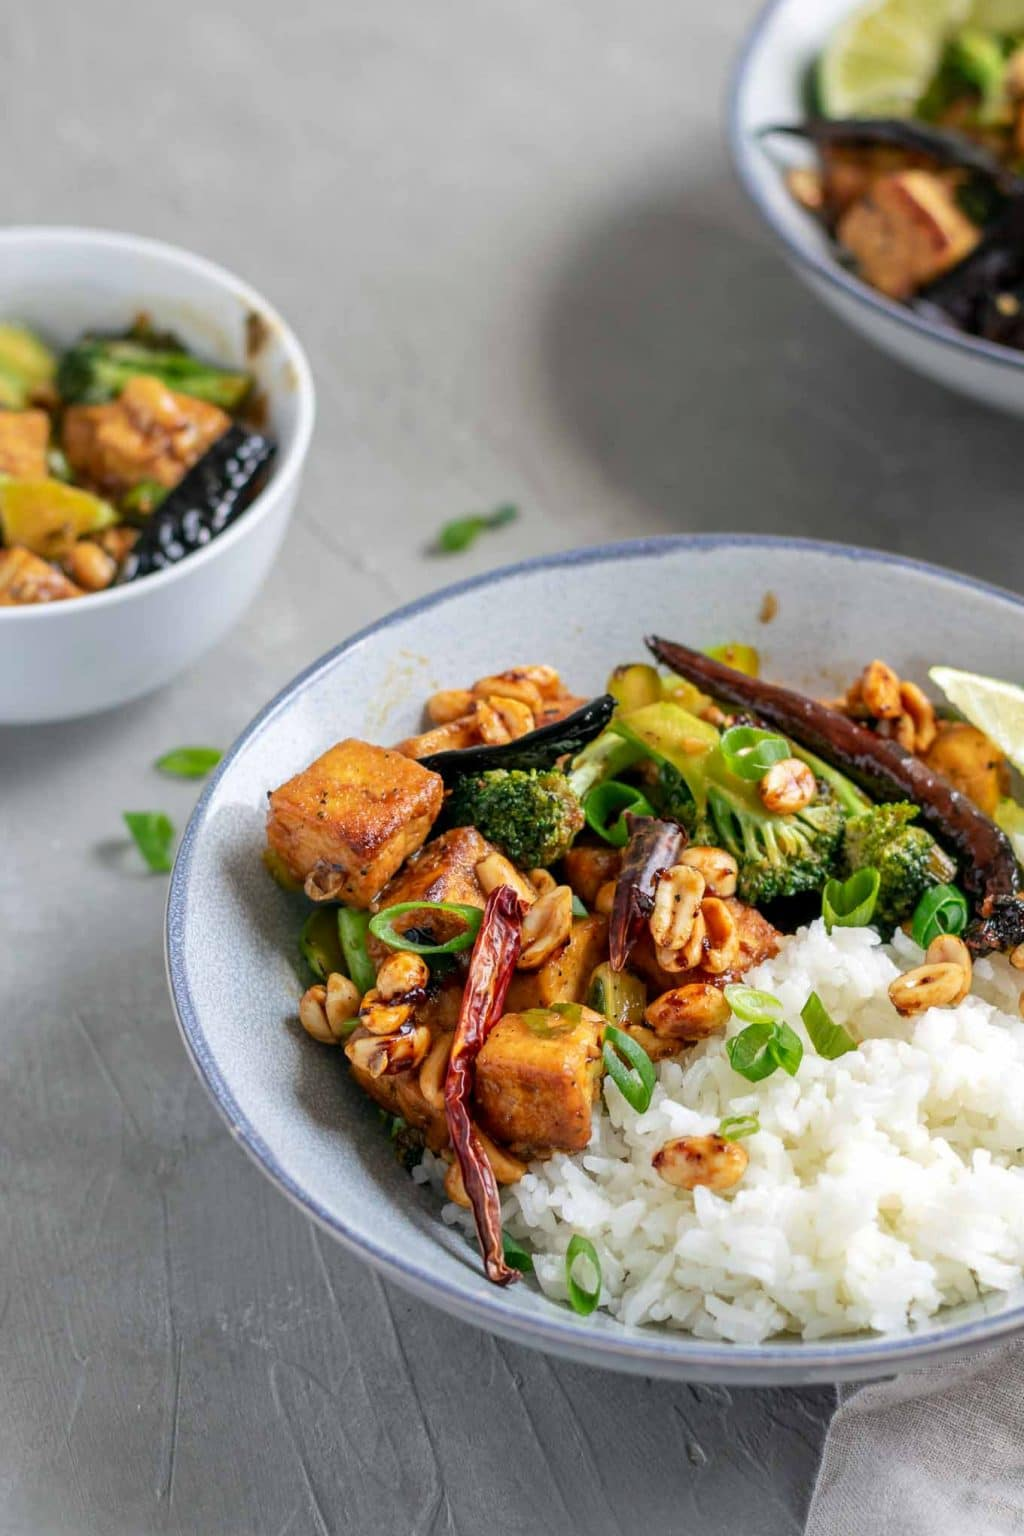 vegan kung pao tofu with broccoli and jasmine rice. Garnished with lime wedges and scallion greens. Angled view.